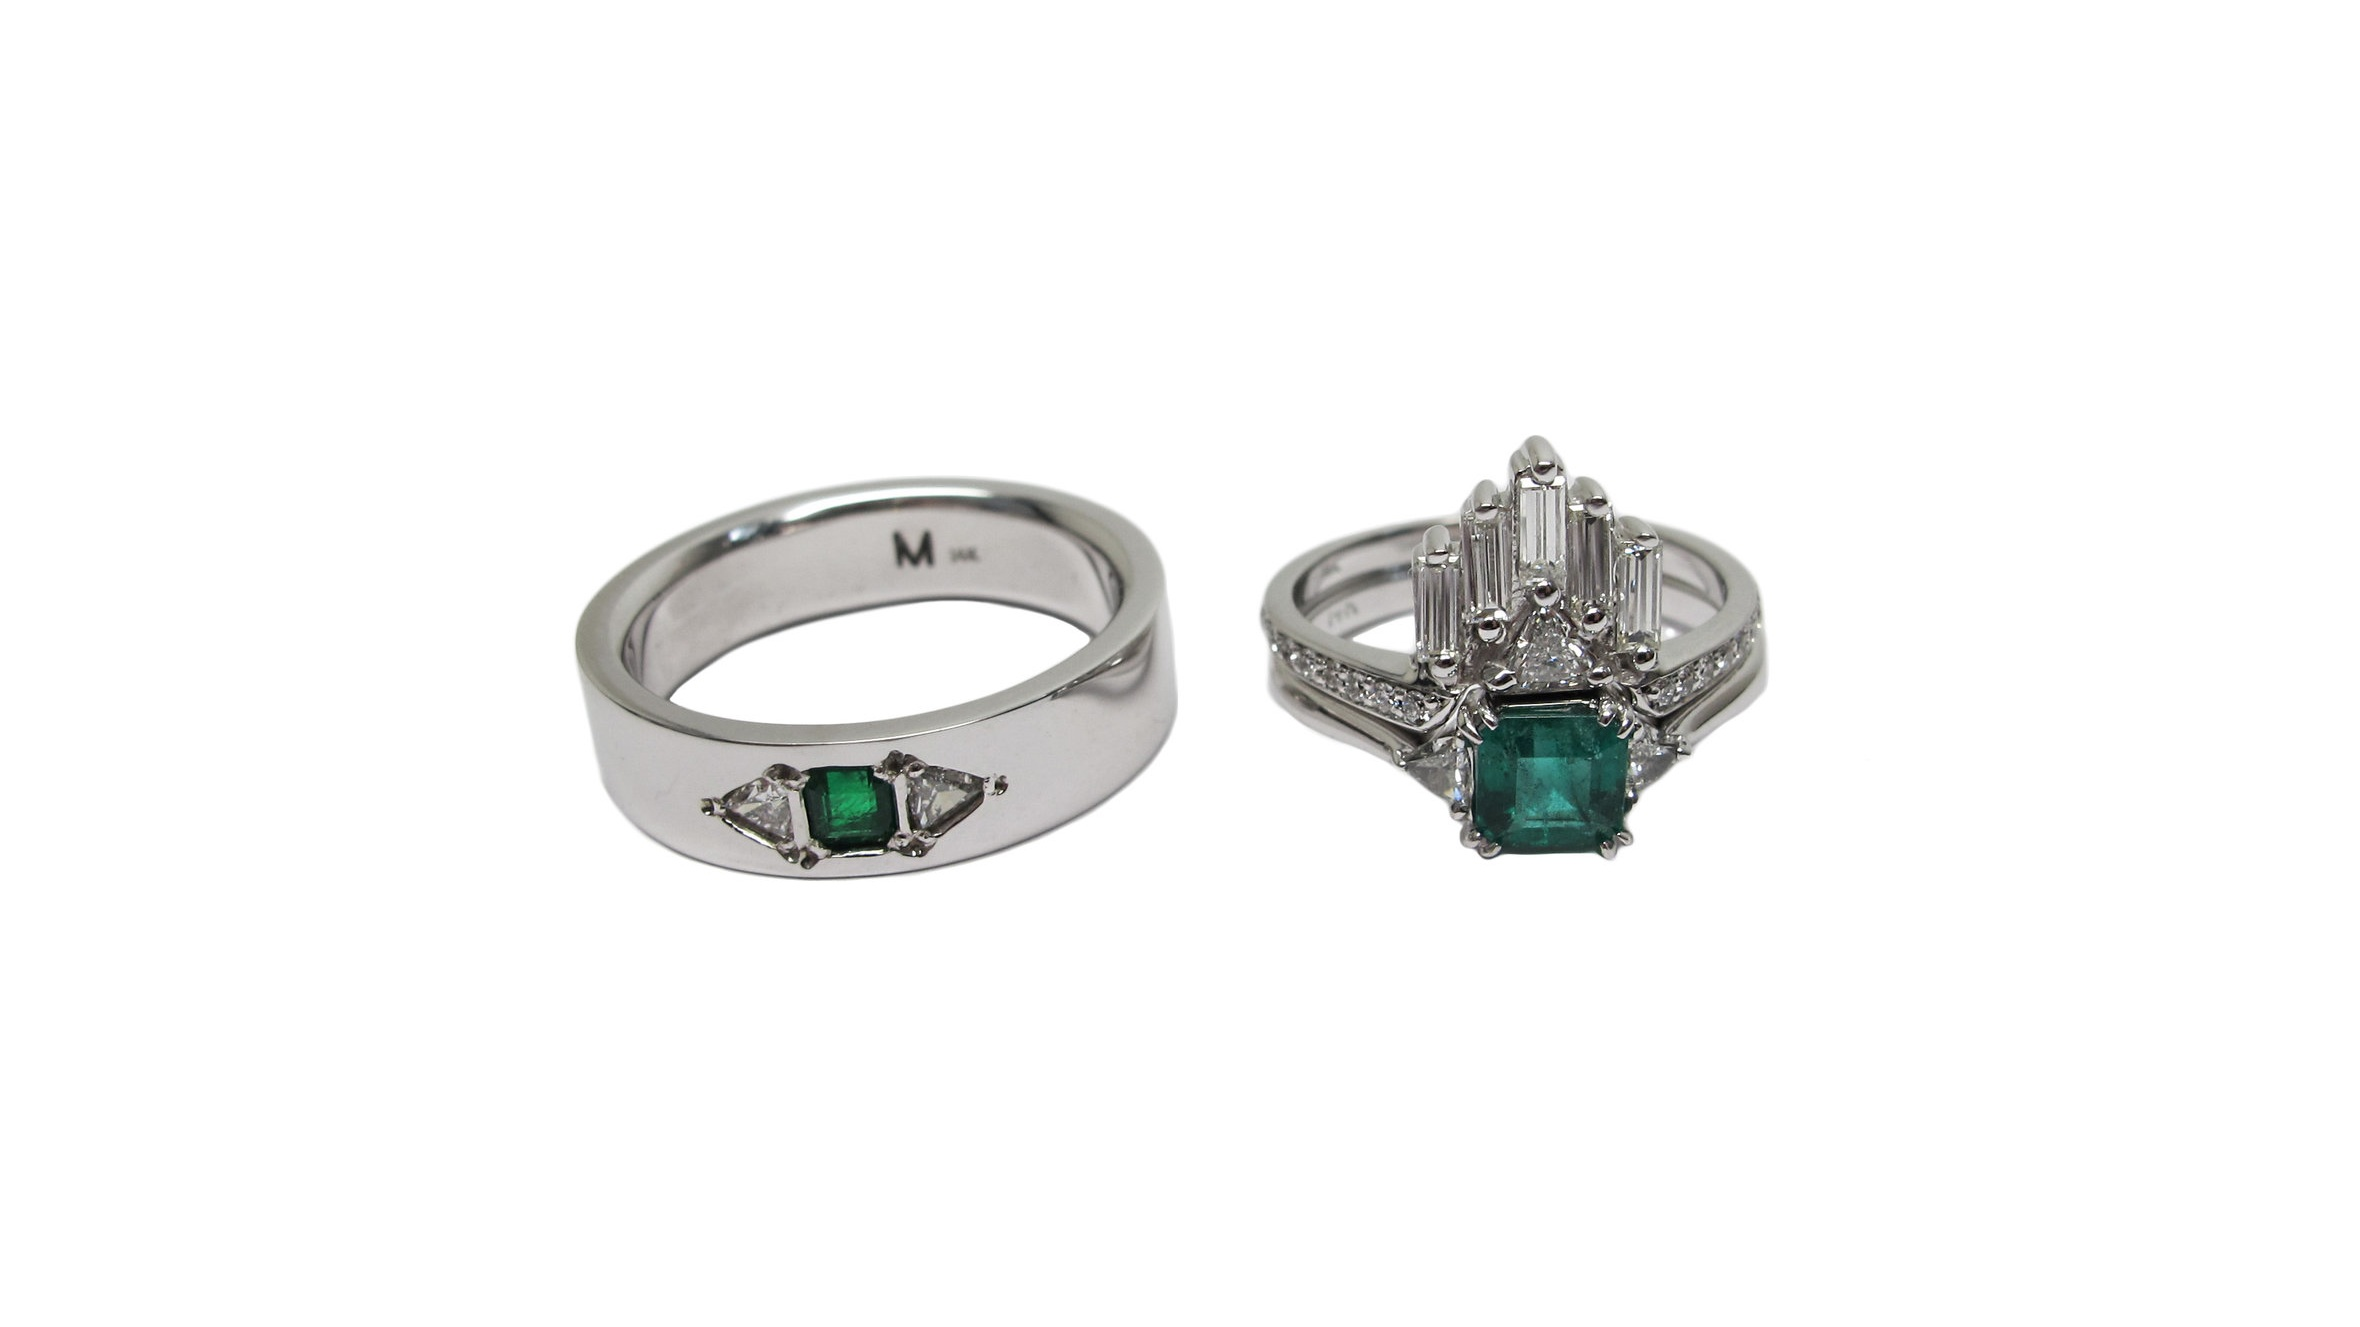 Travis-14k White Gold Flat Band with Emerald Cut Emerald and 2 Trillion Diamonds    Alicia-Wedding and Engagement Ring Set-14k White Gold with Emerald Cut Emerald, Trillions, Baguettes and Micro Pavé